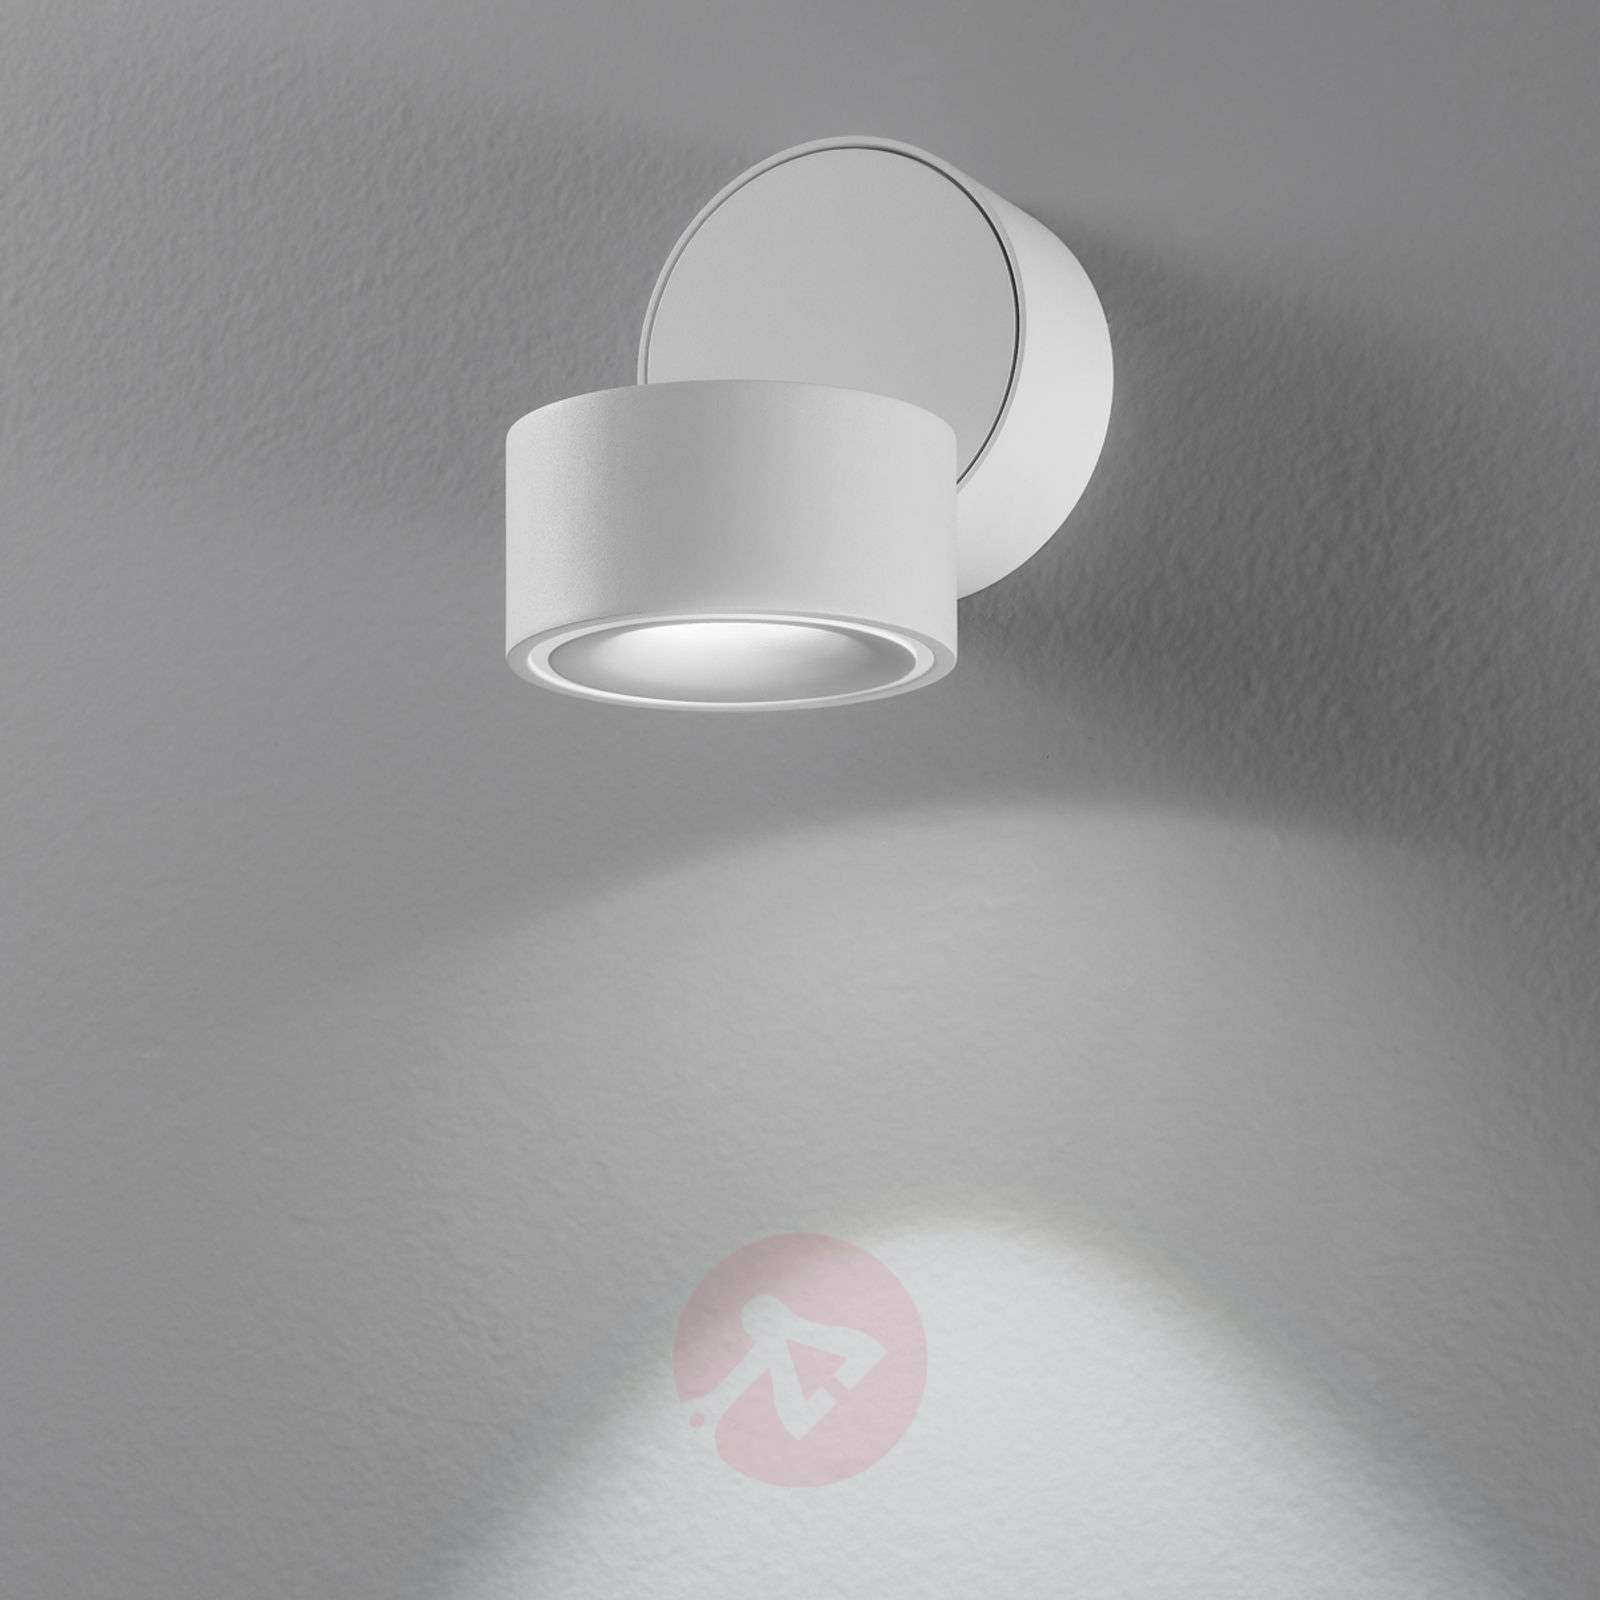 Rotatable and pivotable Clippo LED ceiling spotlight-3023101-01